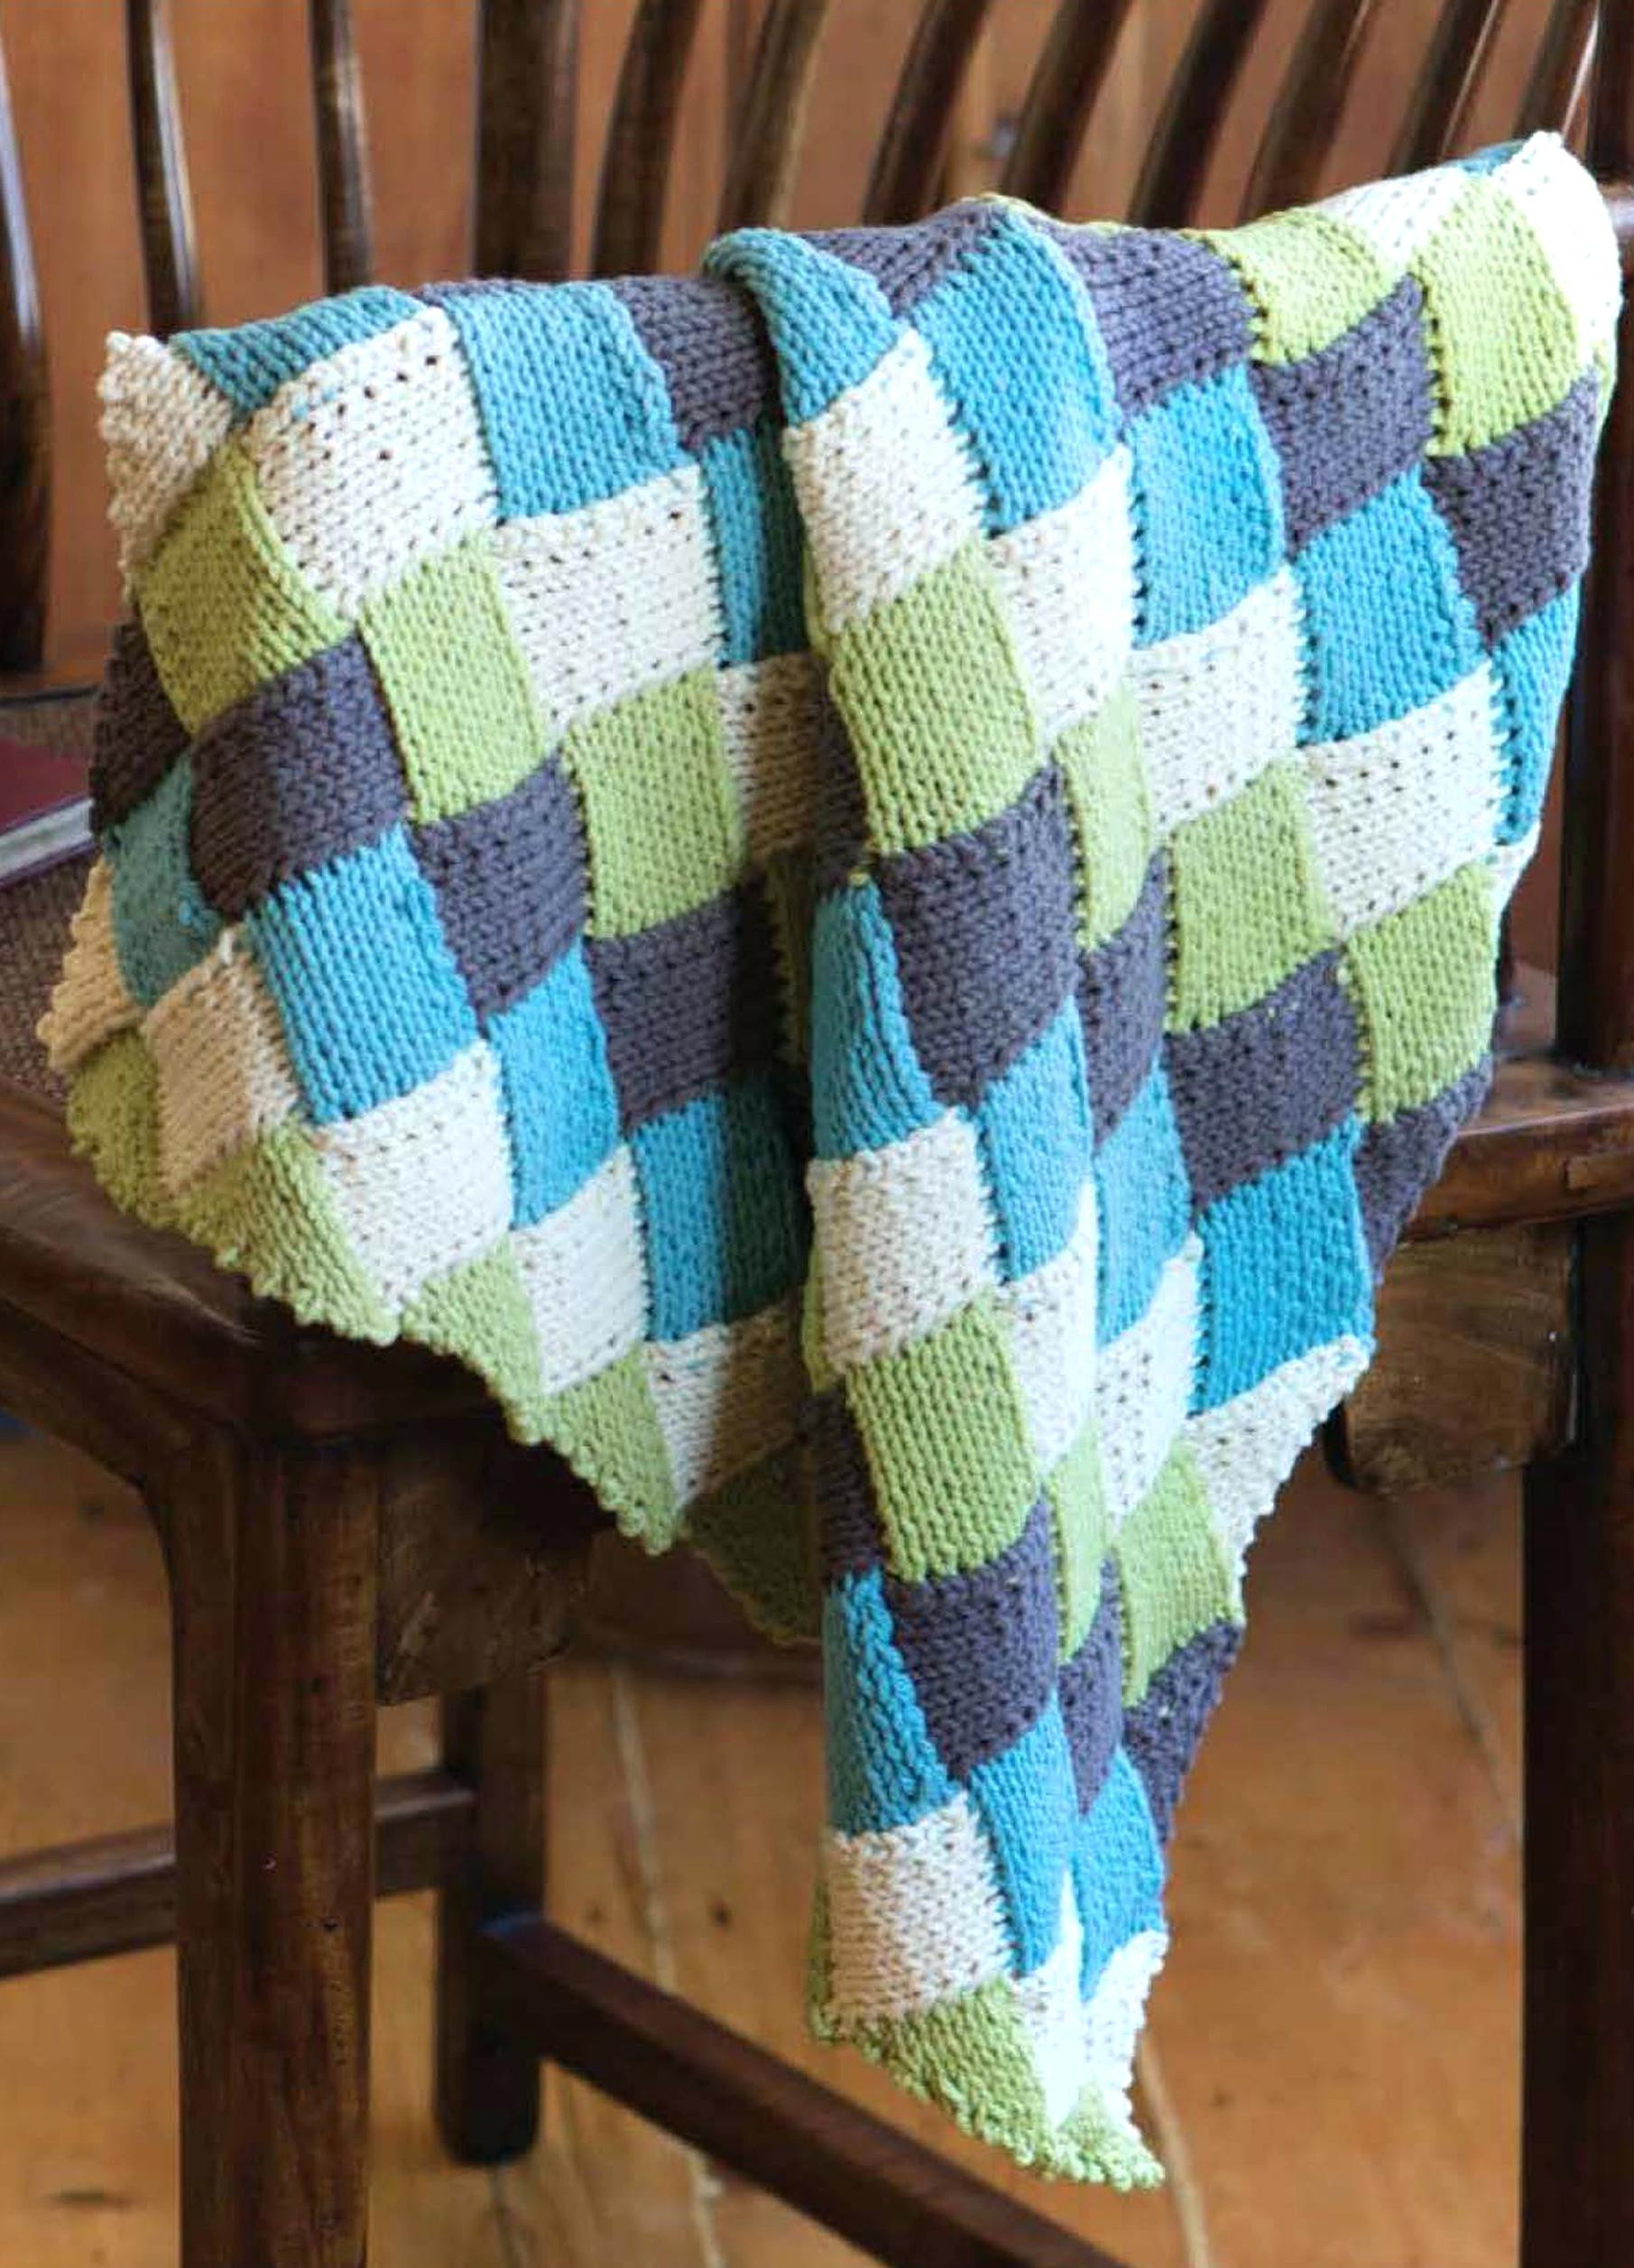 Afghan Blanket Pattern Unique 6 Loom Knitting Baby Blanket Patterns the Funky Stitch Of Attractive 40 Pics Afghan Blanket Pattern